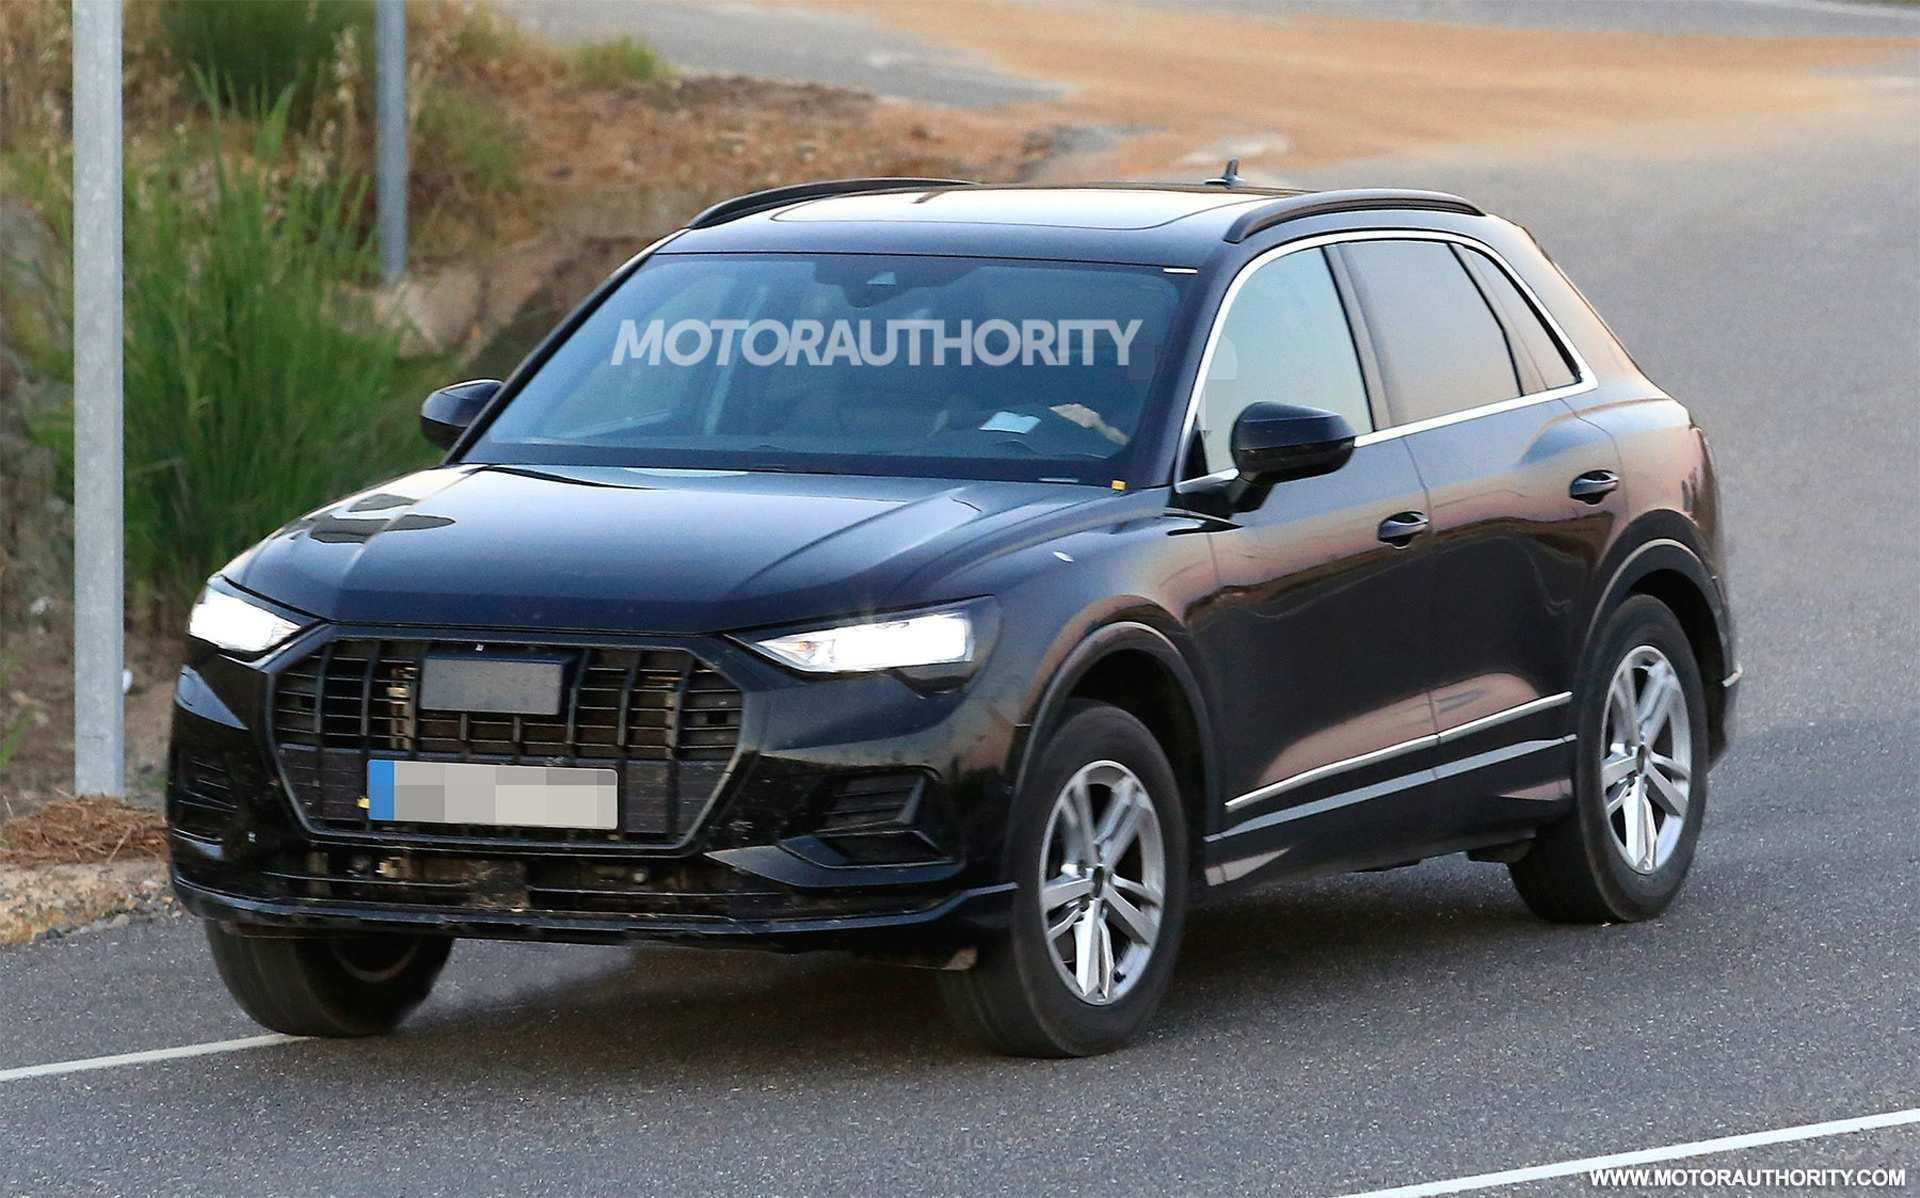 57 All New 2020 Audi Q7 Price